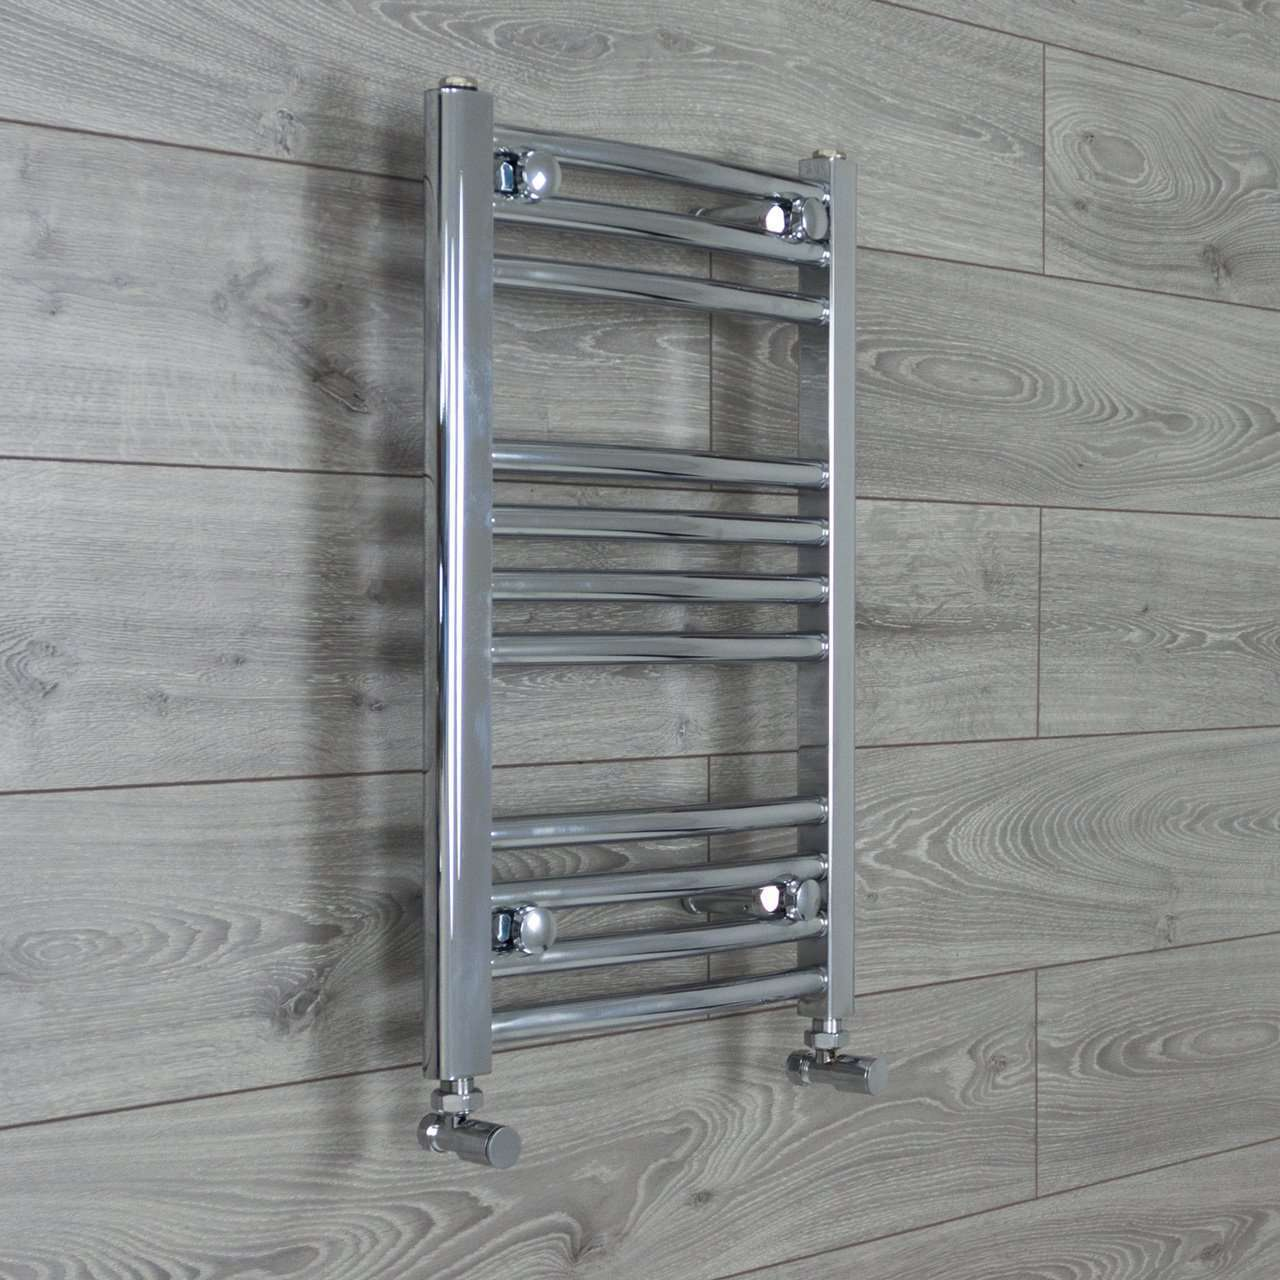 400mm Wide 600mm High Curved Chrome Heated Towel Rail Radiator HTR,With Angled Valve